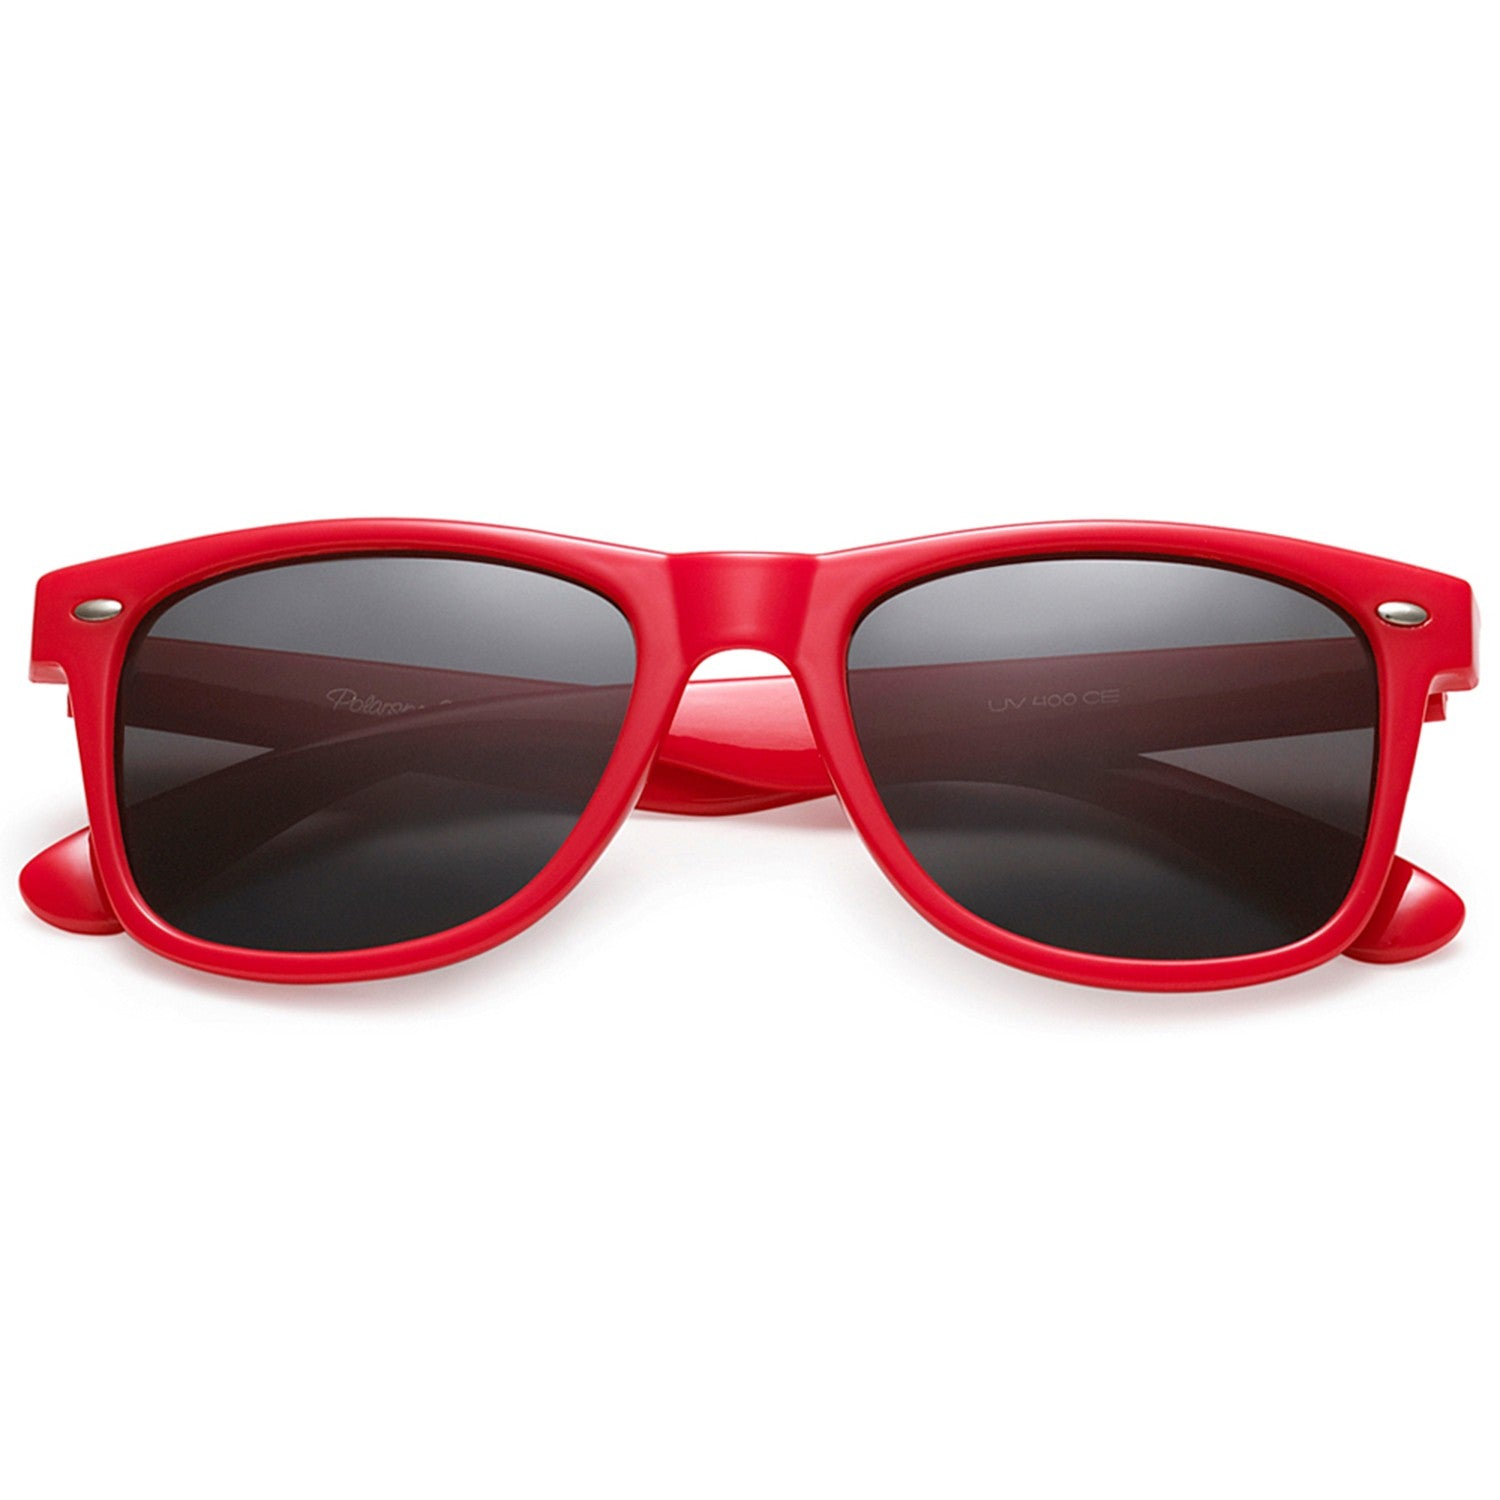 Polarspex Polarized 80's Retro Style Unisex Sunglasses with Scarlet Red Frames and Smoke Lenses